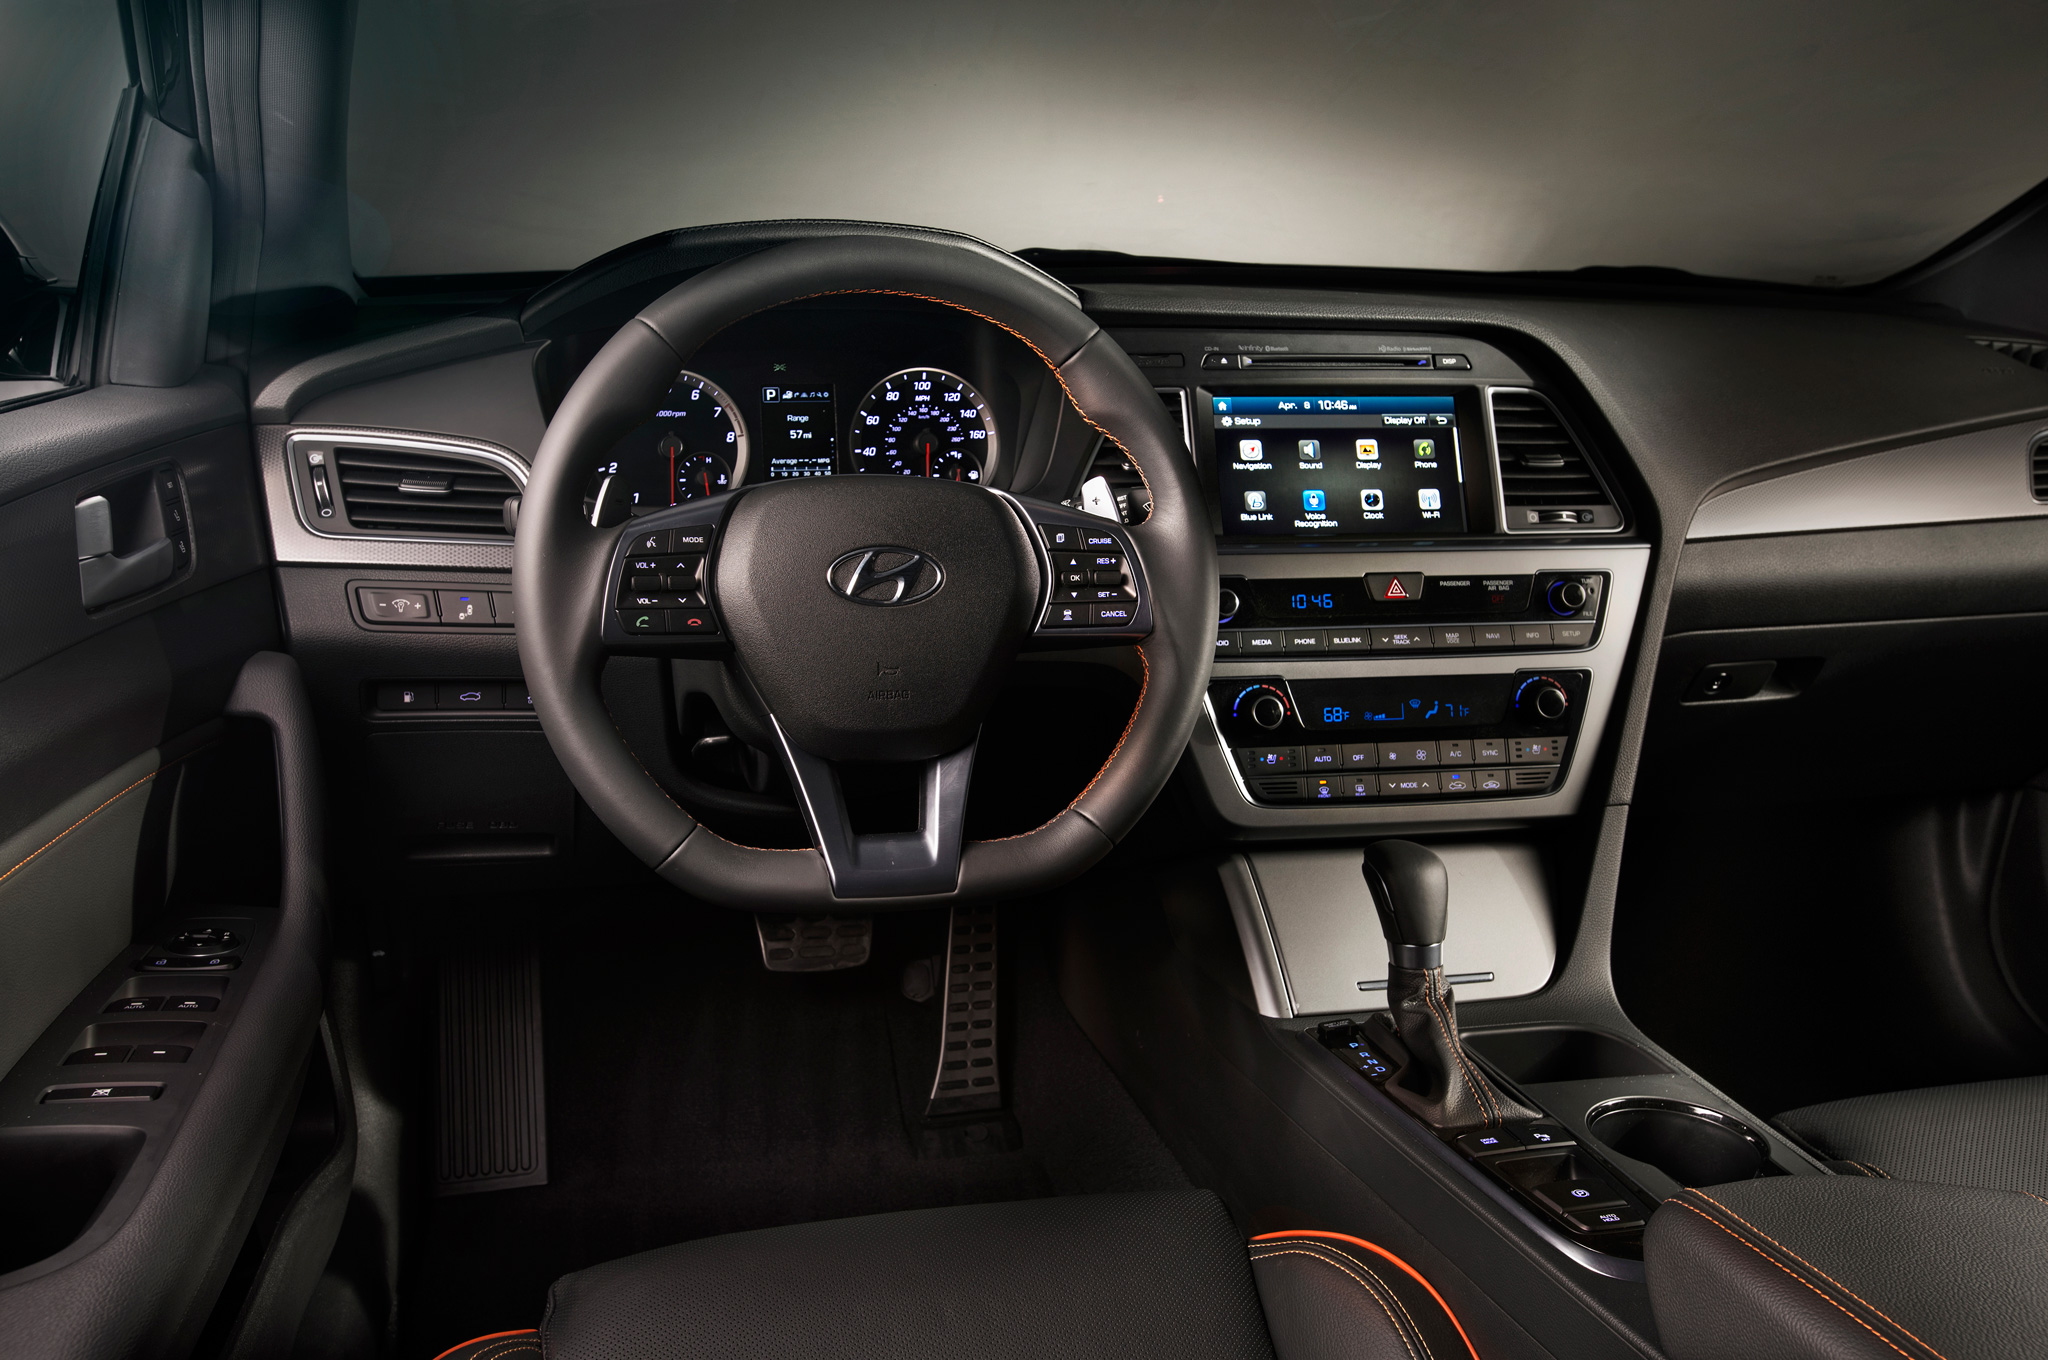 2015 Hyundai Sonata Dashboard And Cockpit (Photo 3 of 11)